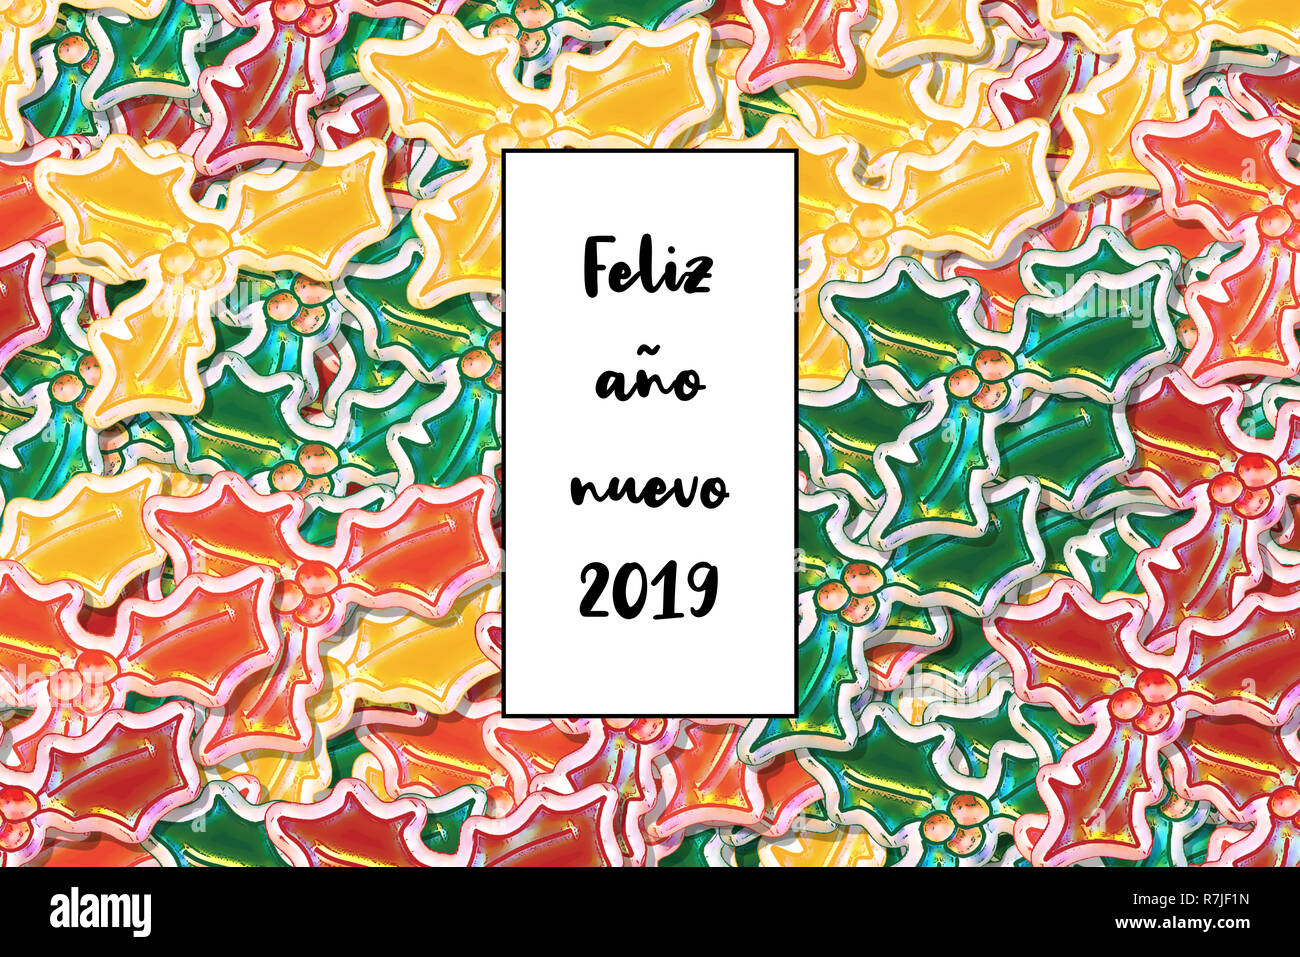 Feliz año nuevo 2019 card (Happy New Year in spanish) with colored holly leaves as a background - Stock Image